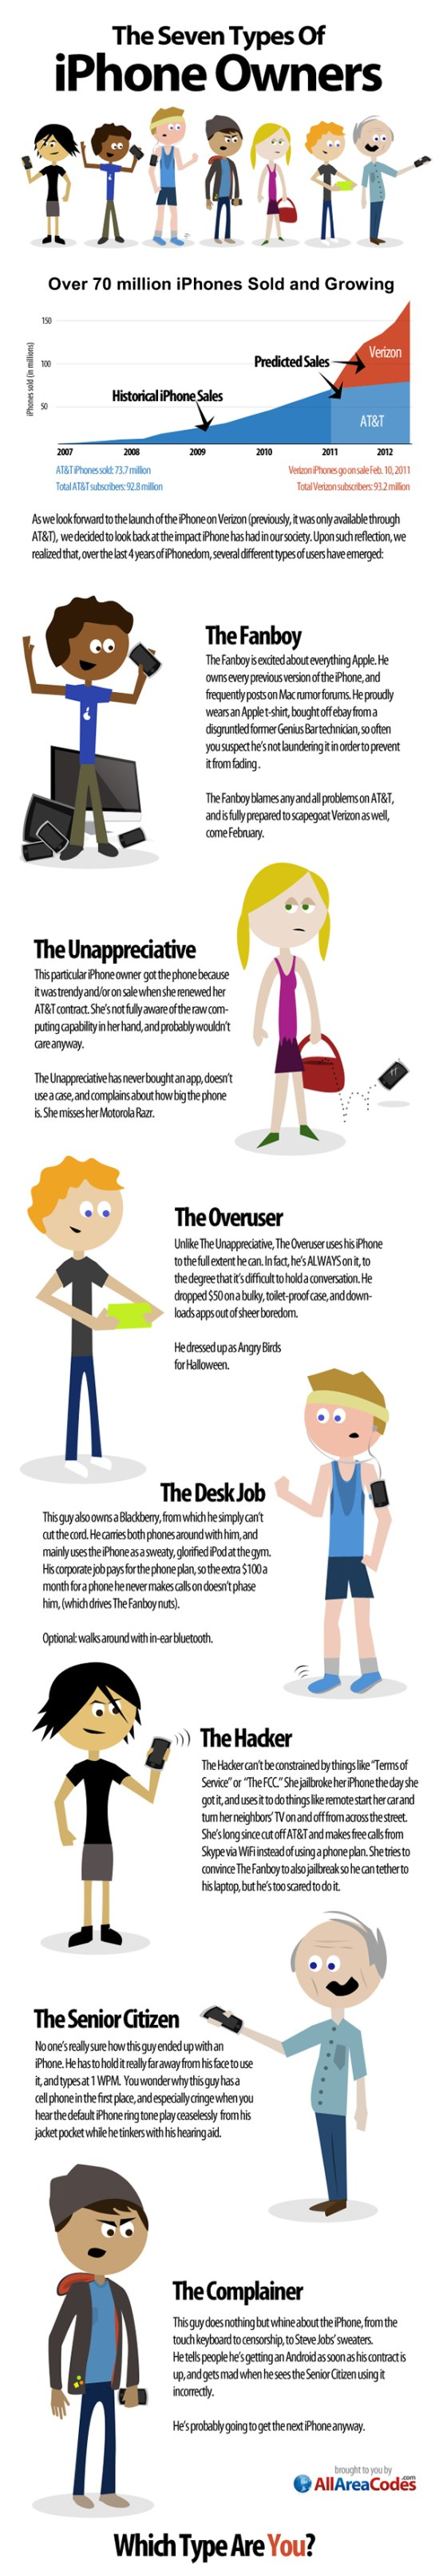 7 Types of iPhone Users by All Area Codes